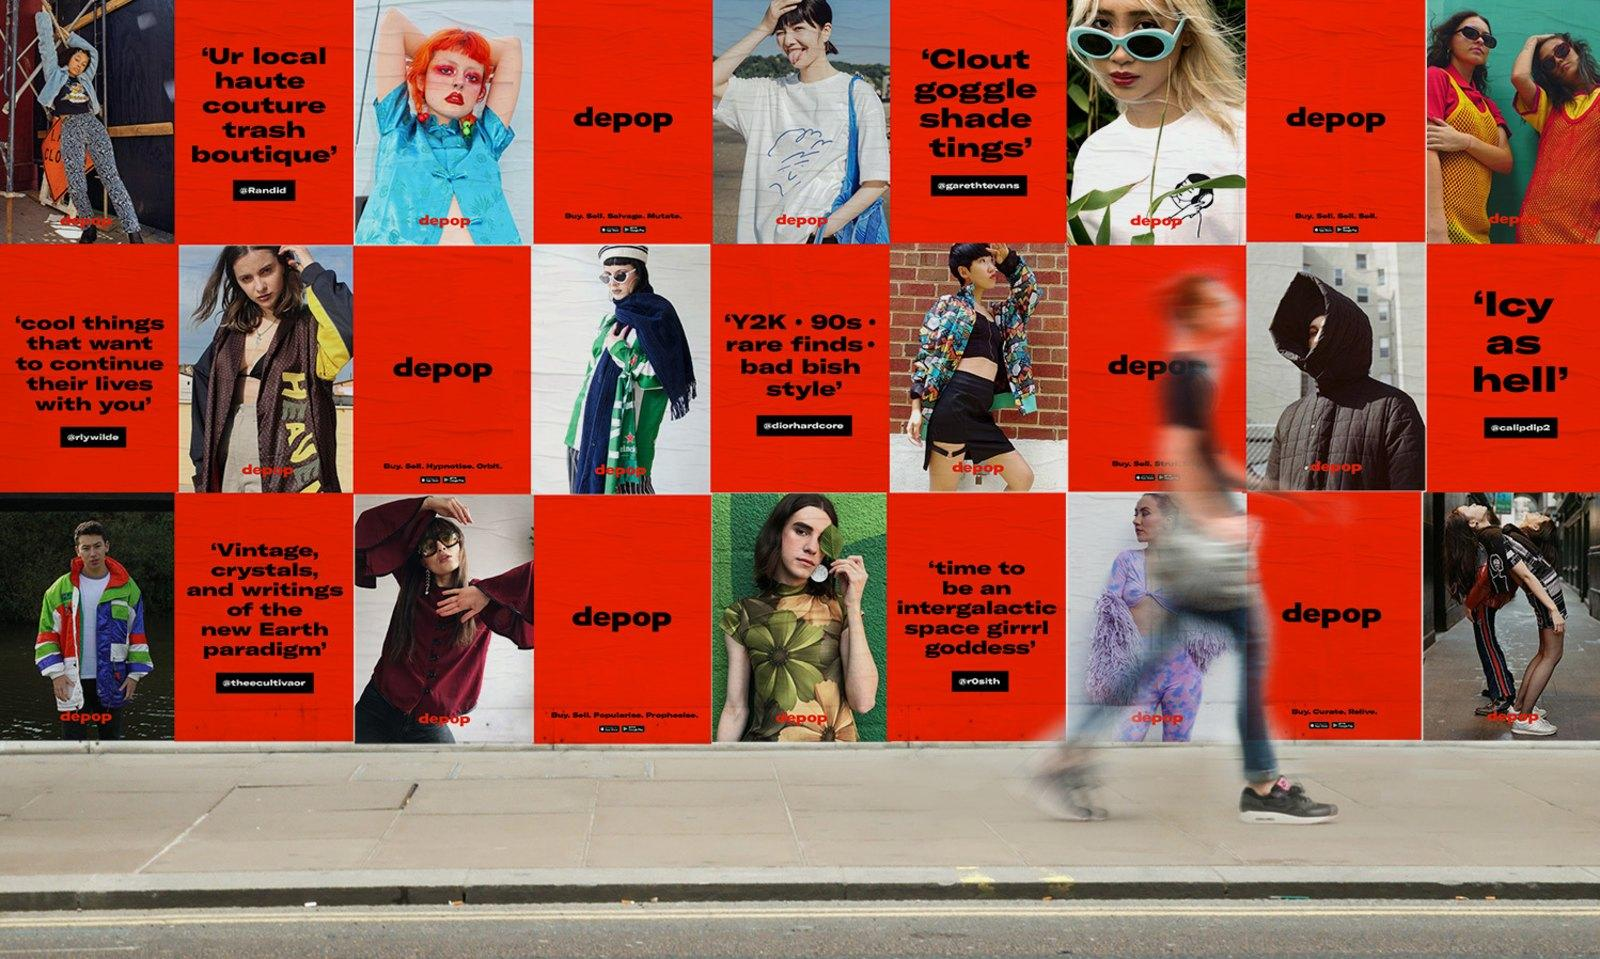 Depop asked DesignStudio to help it build its first global brand campaign